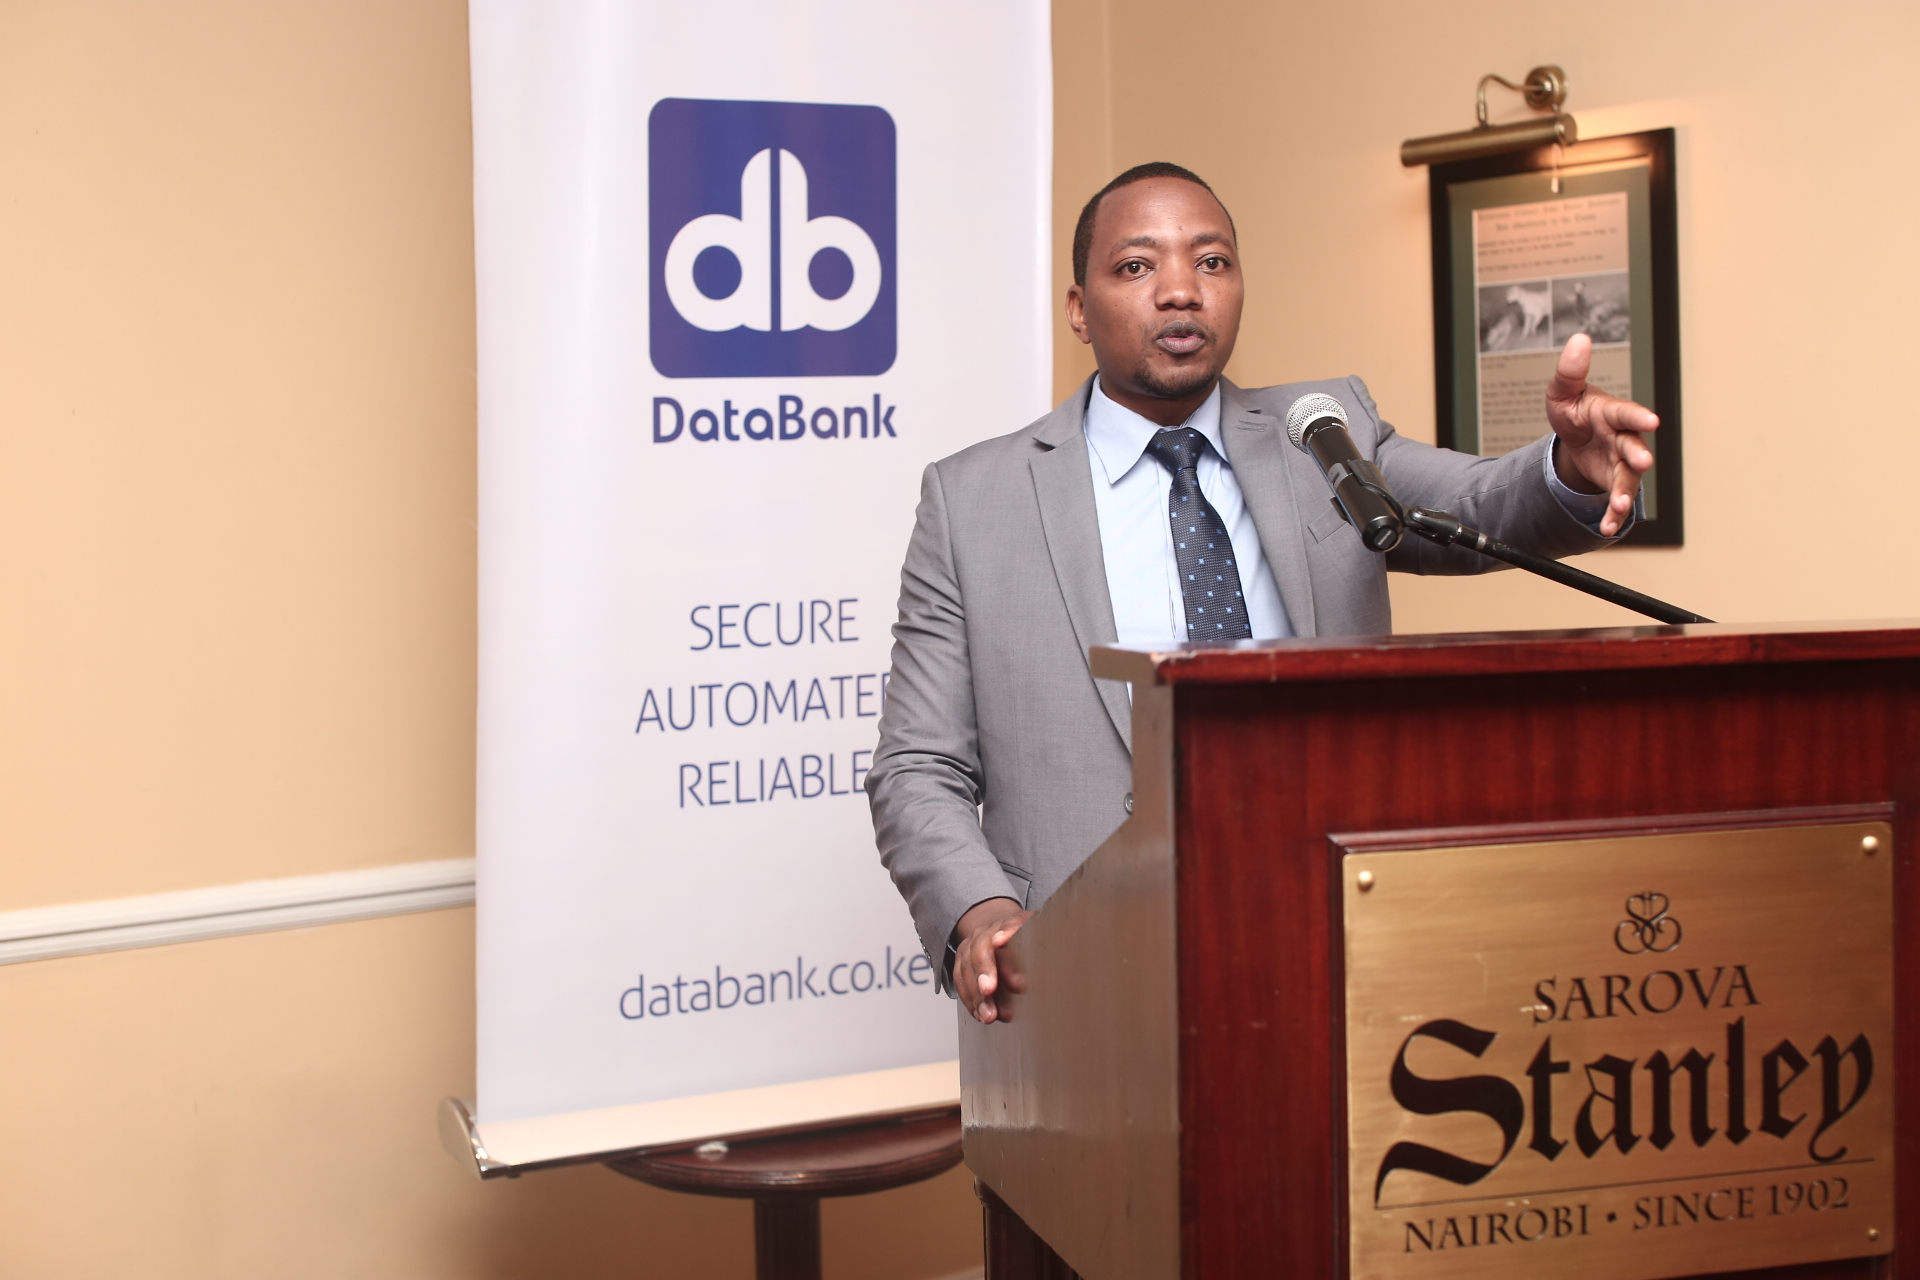 David Njoroge, DataBank Director